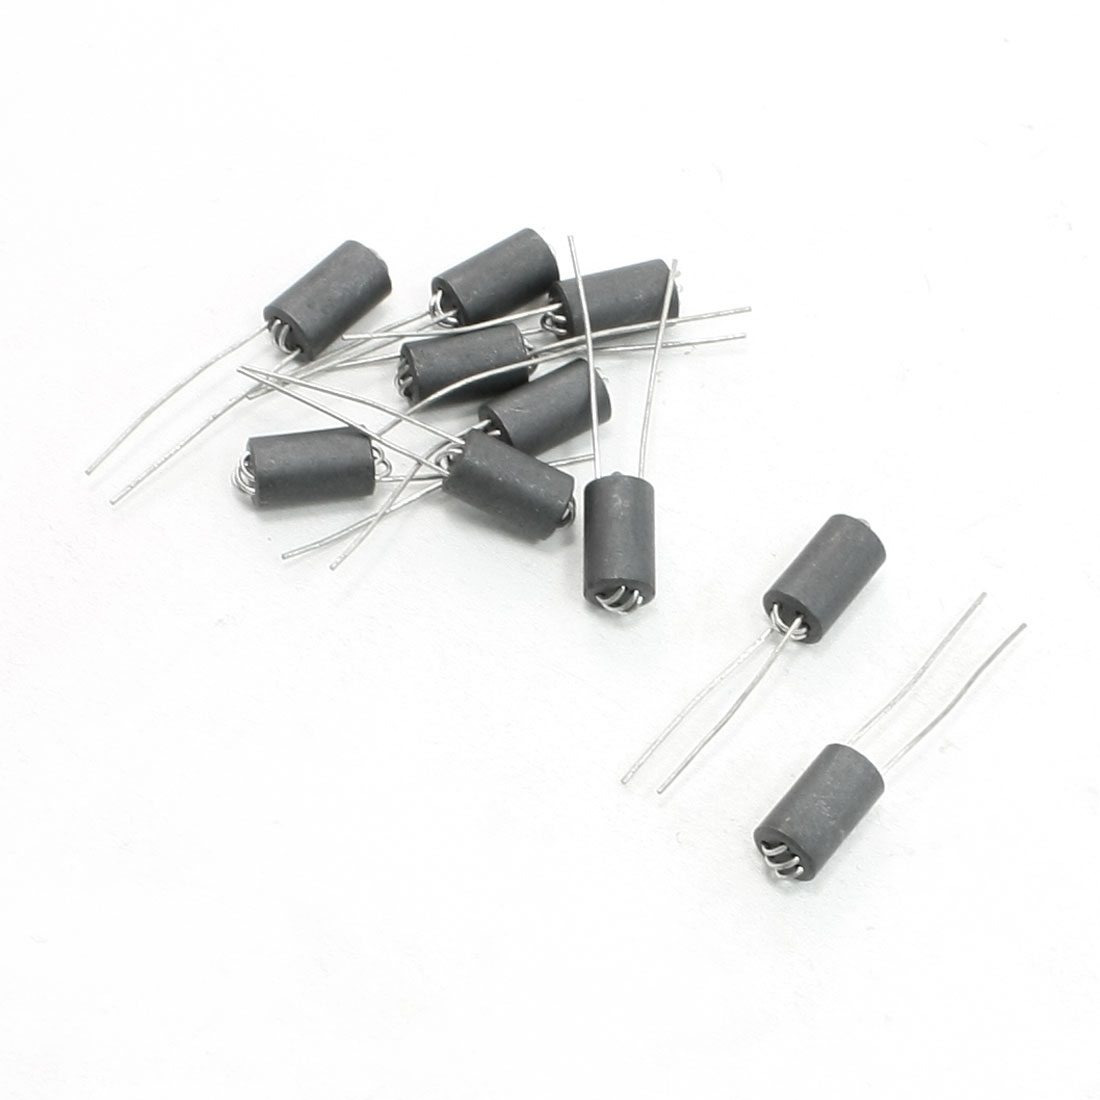 UXCELL 10 Pcs 6 x 10mm Lead Dia 0.8mm Axial Lead 6 Channel Ferrite Beads Inductors for Easy Plug